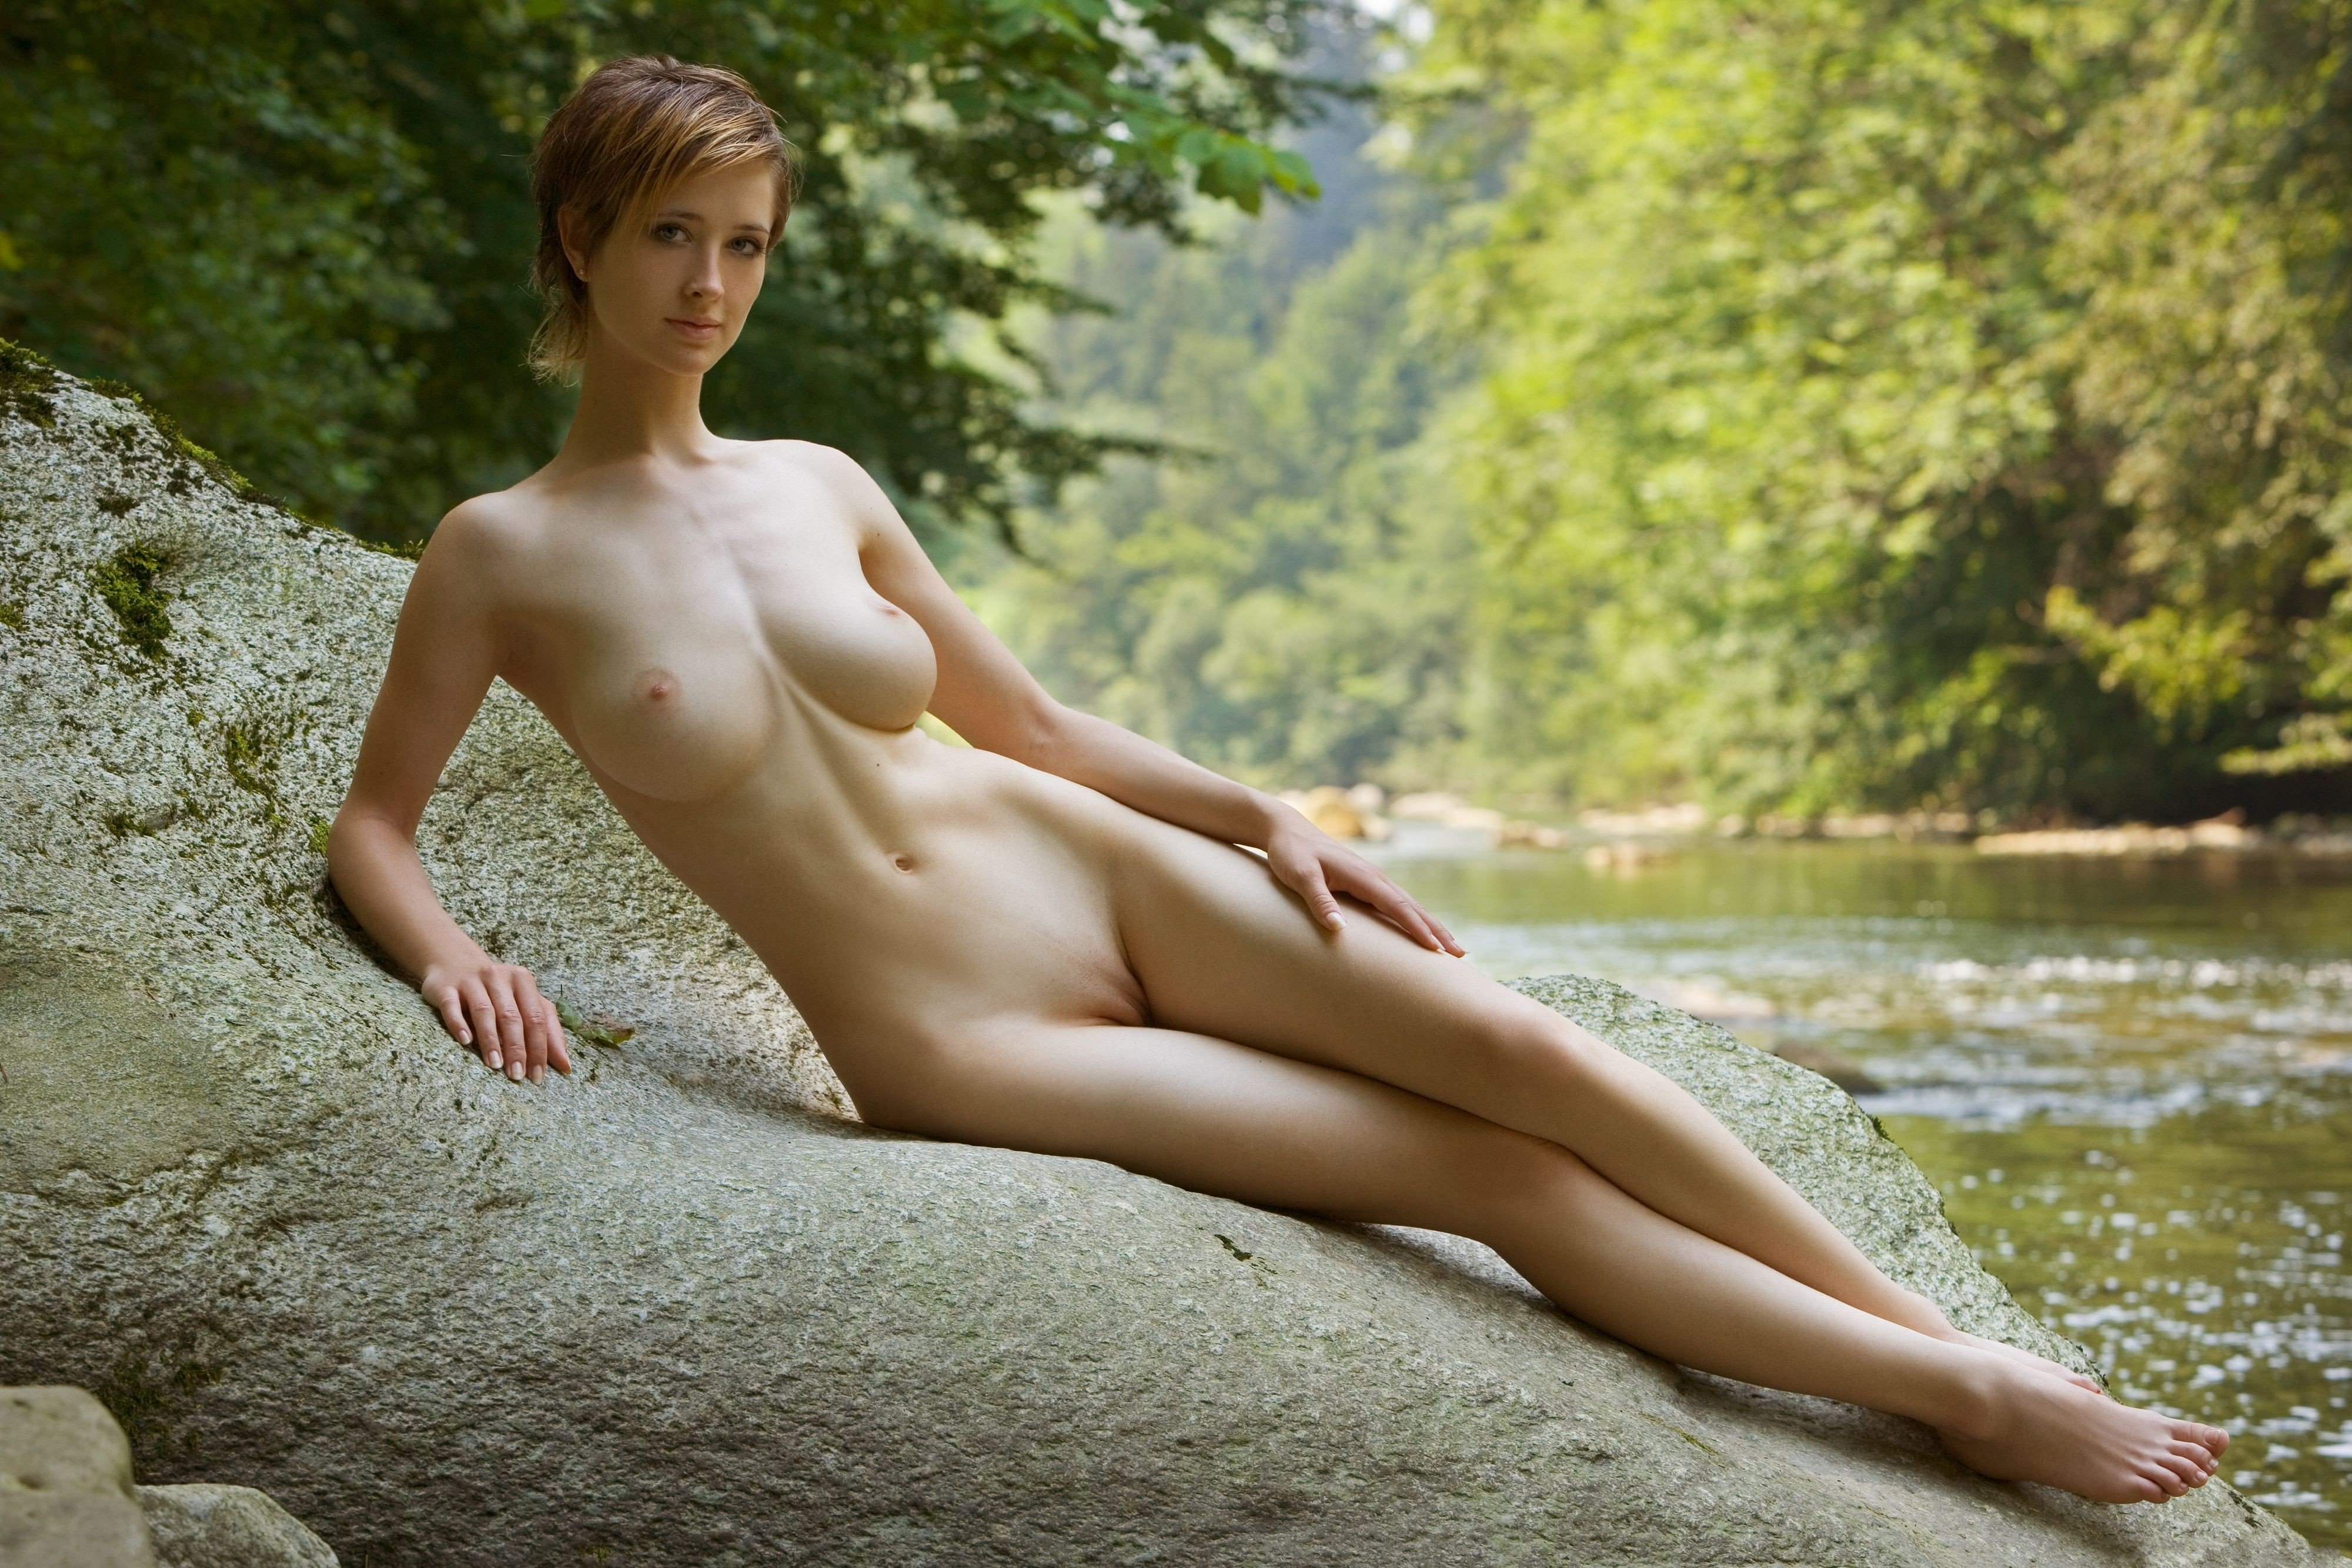 Large nude asian girl with legs open